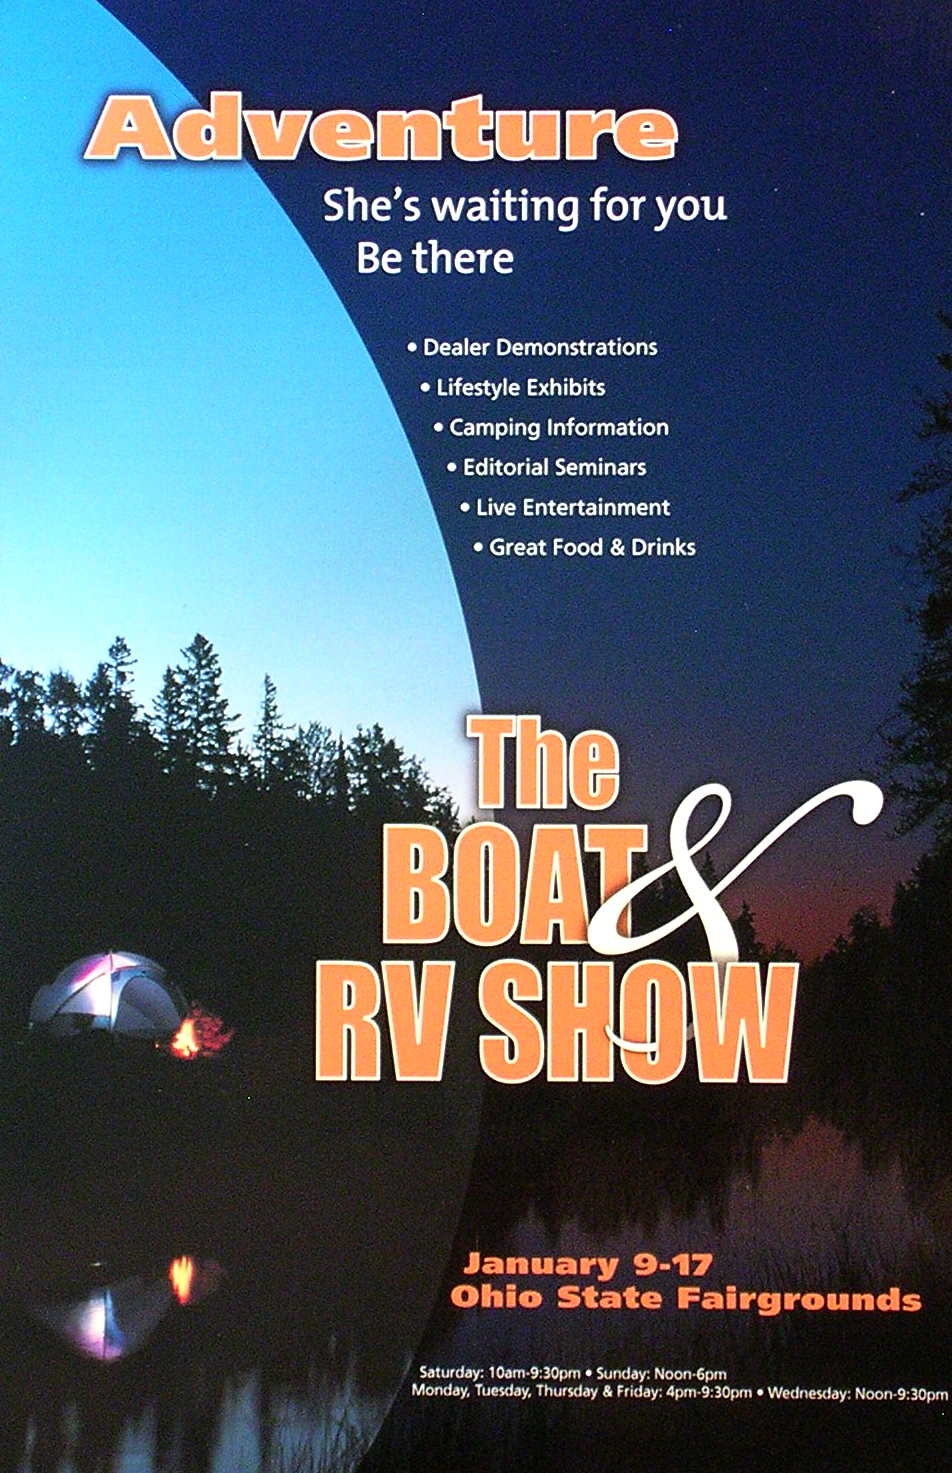 COLUMBUS BOAT AND RV SHOW